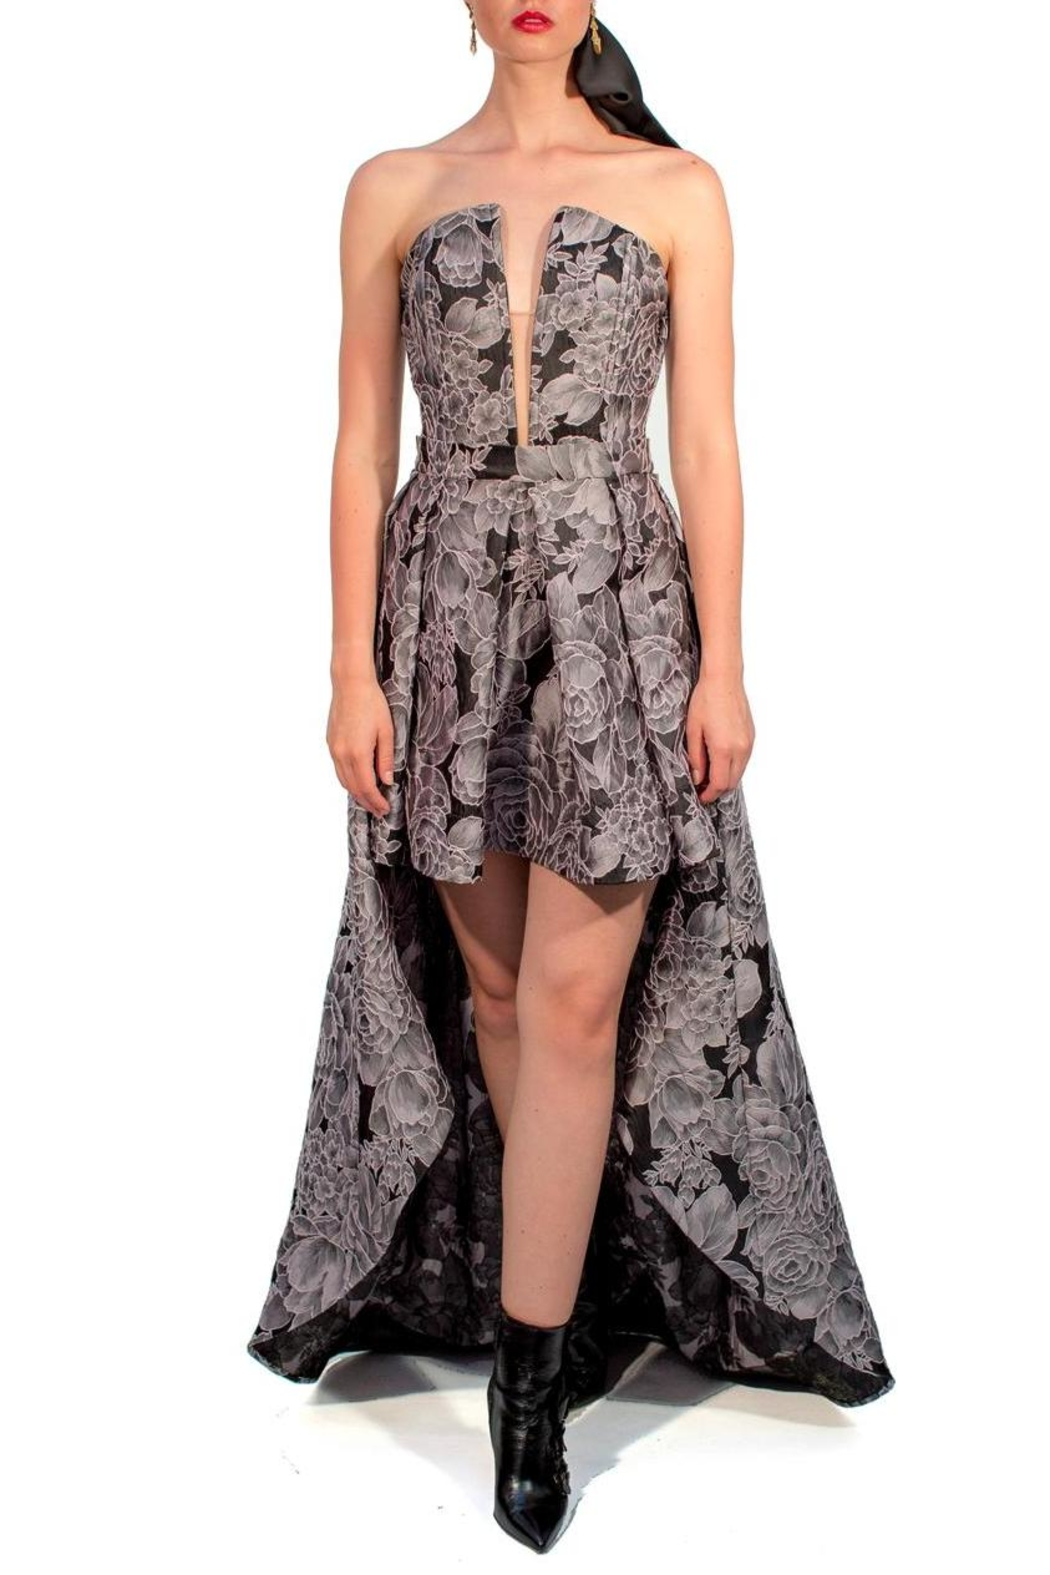 Viesca y Viesca Asimetric Corset Gown from Mexico — Shoptiques